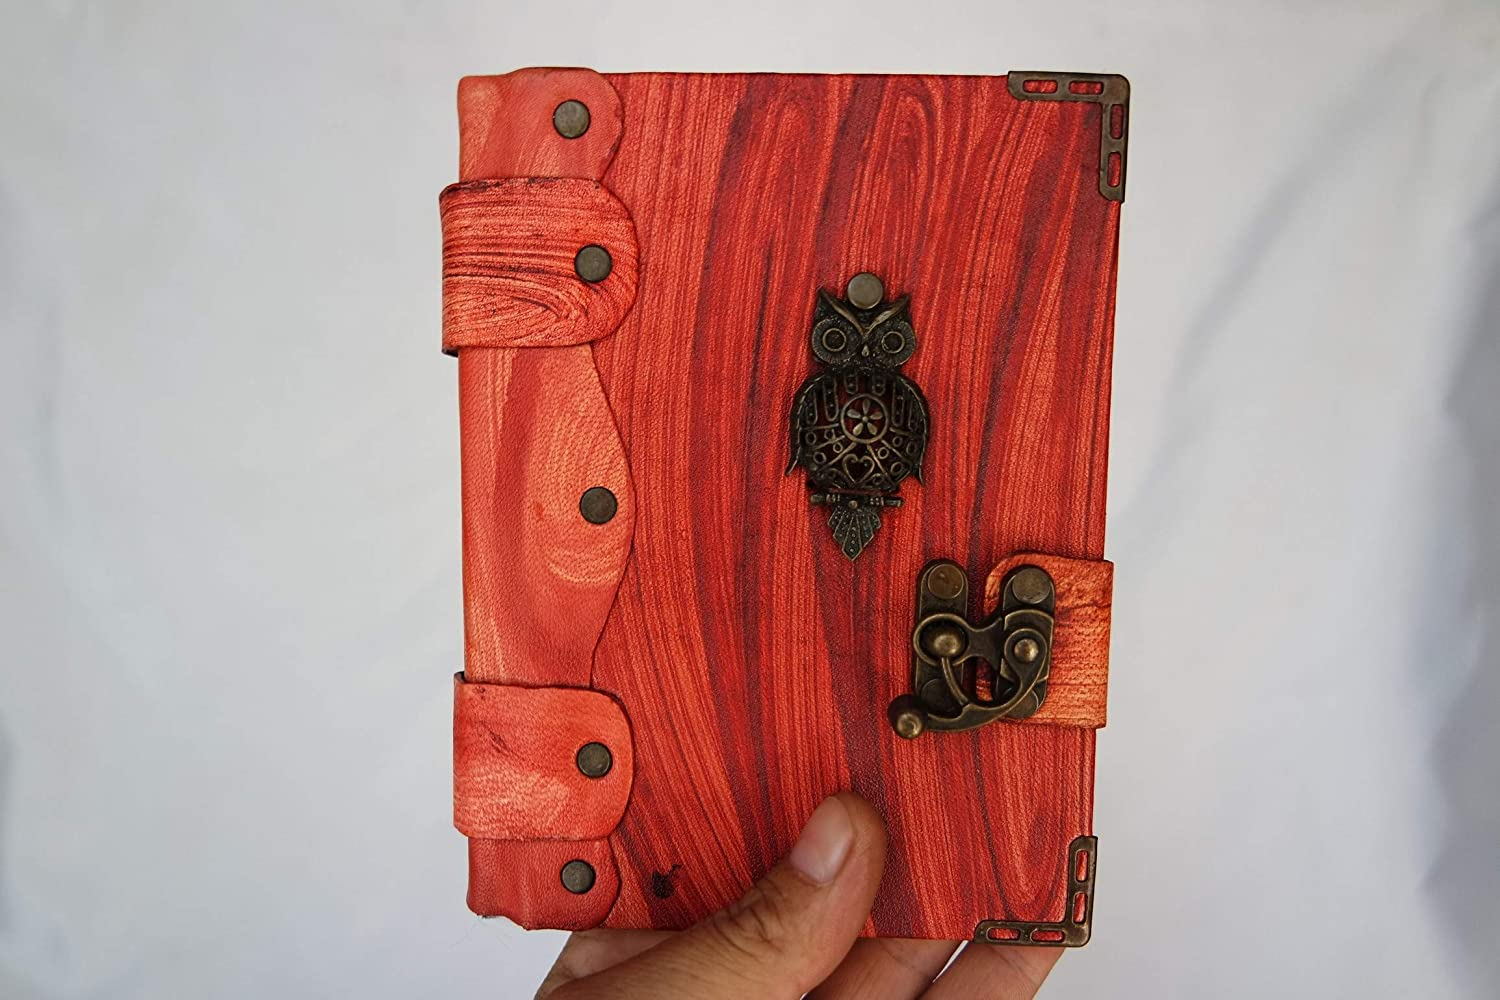 owl pendant notebook,handmade book leather,leather bound journal,leather journal antique vintage design sketchbook Handmade Small leather journal notebook